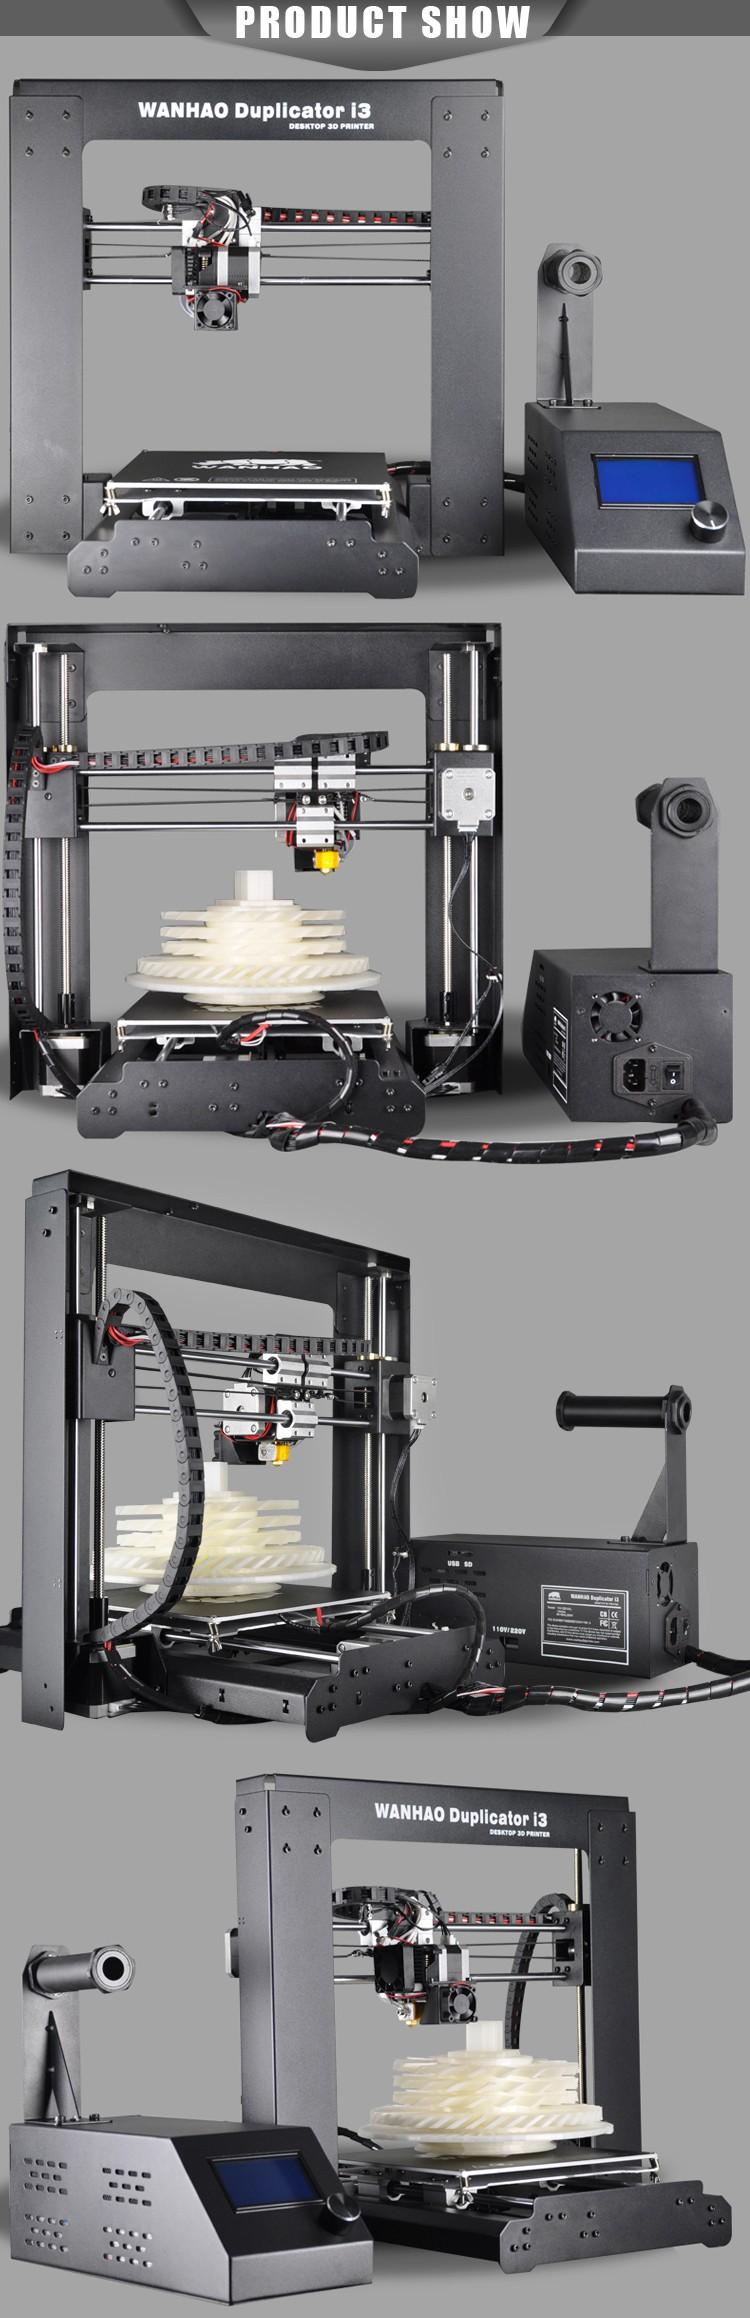 diy large format printer,metal 3d printer machine,reprap prusa i3 kit